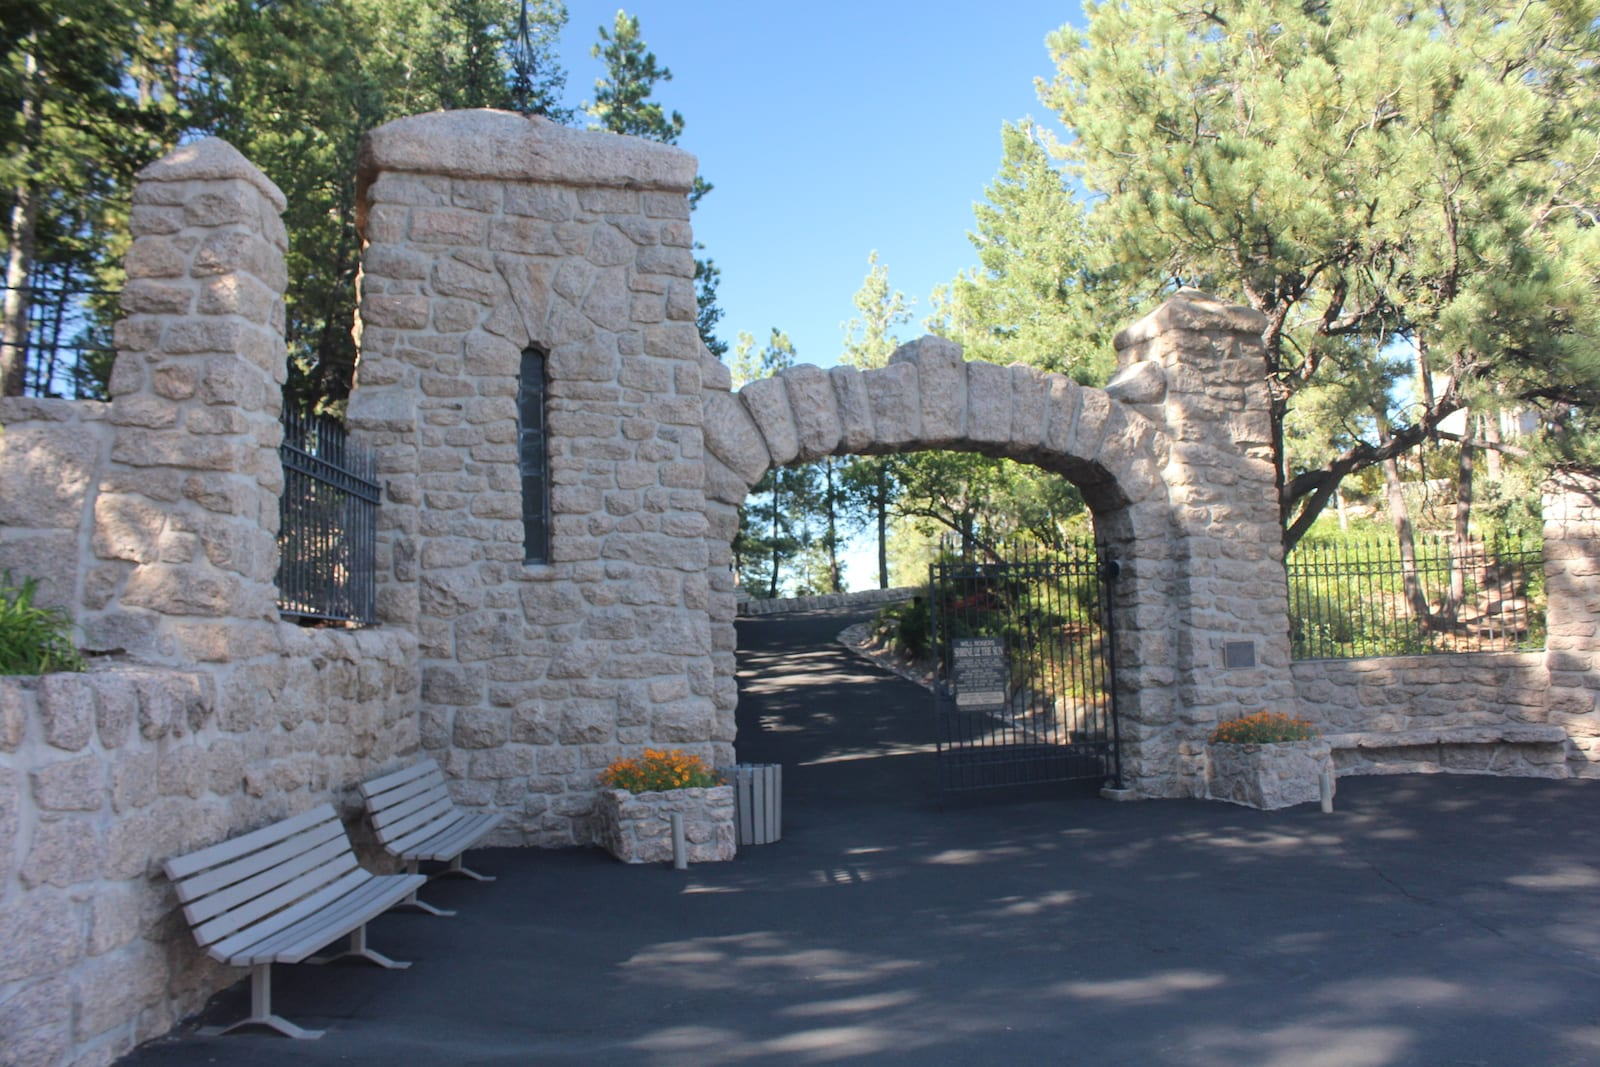 Will Rogers Shrine of the Sun Colorado Springs Entrance Gate